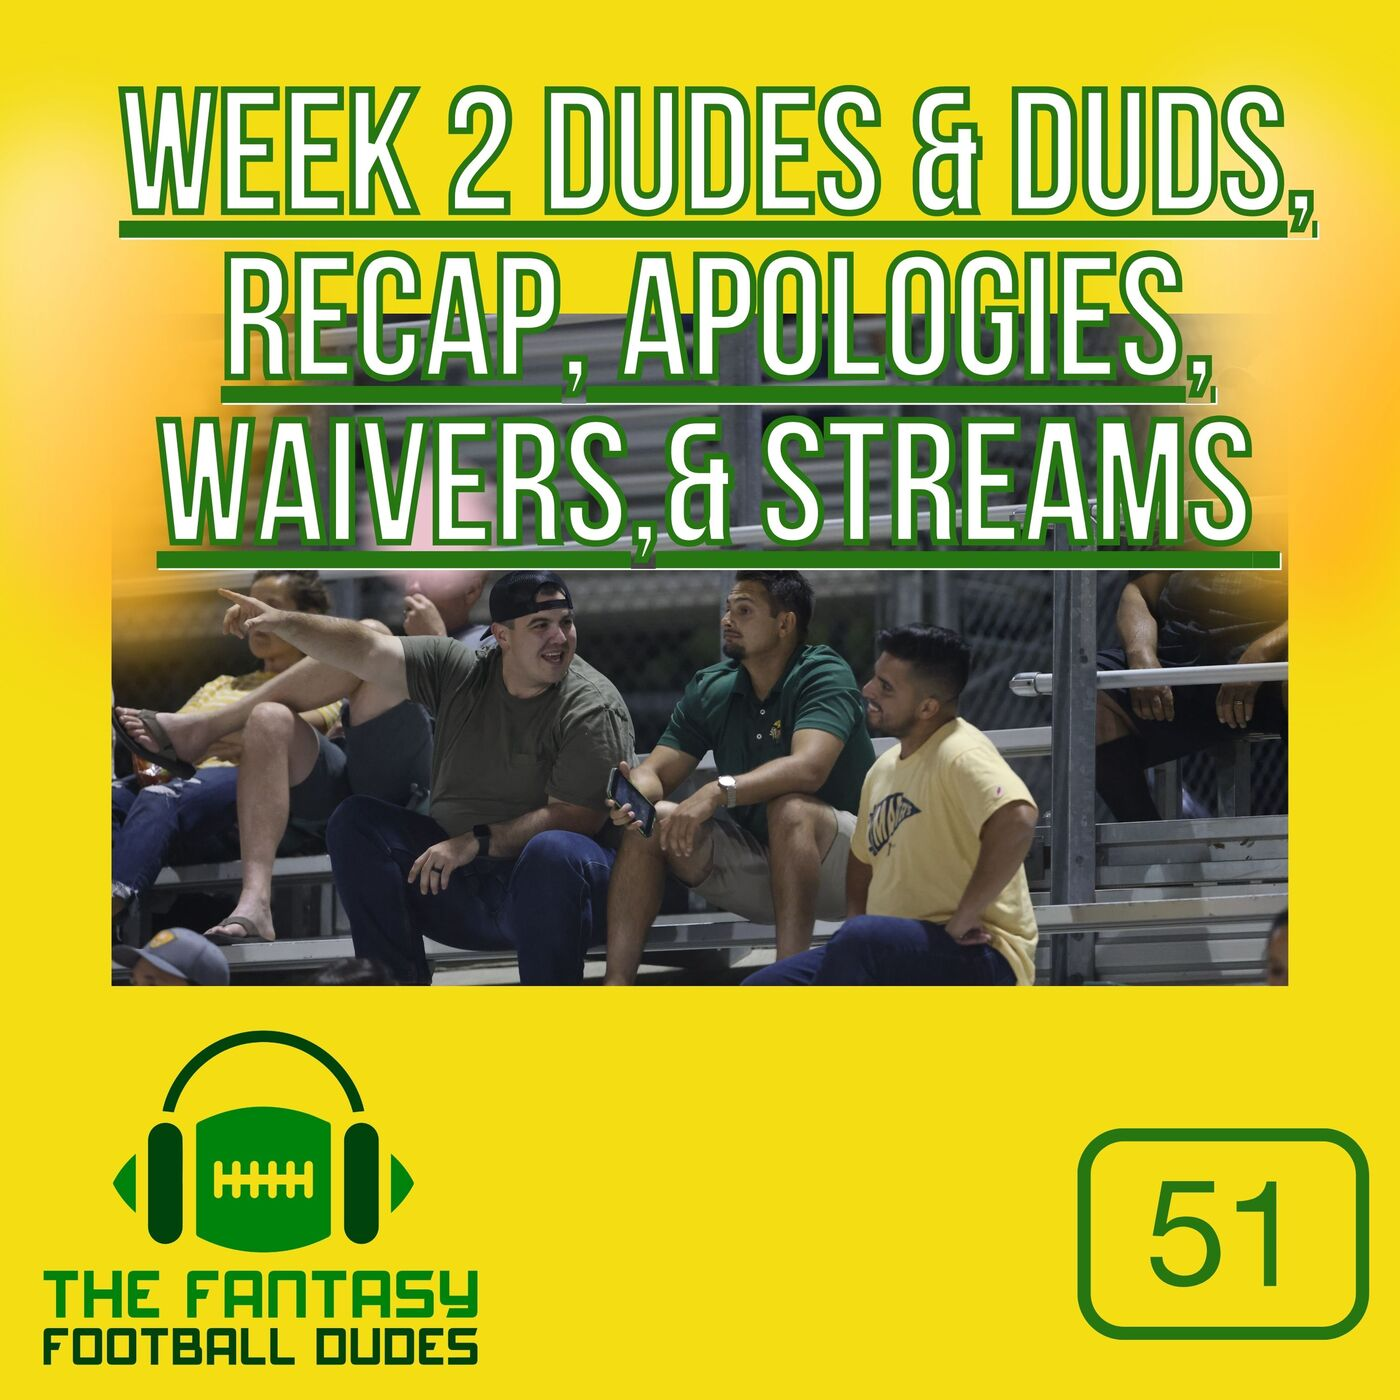 Week 2  Dudes and Duds + recaps + Trent's apology to Lamar - Fantasy Football Podcast for 9/20